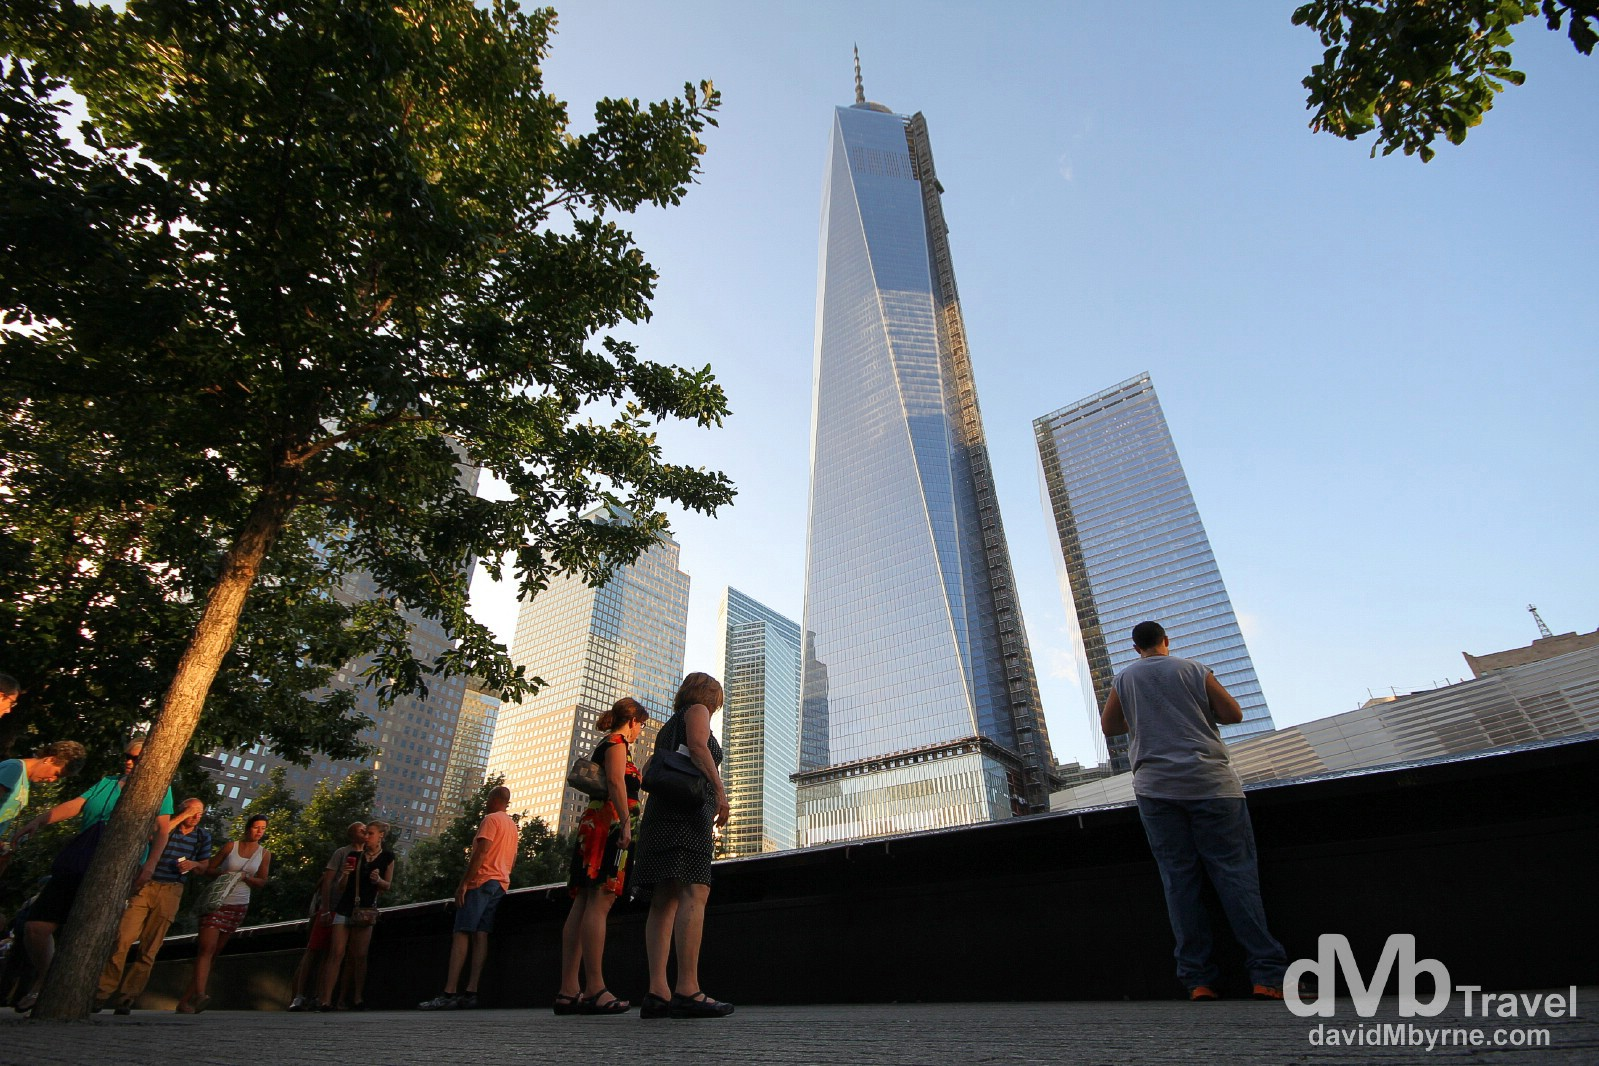 Towers of the rebuilt World Trade Center towering over the The 9/11 Memorial, lower Manhattan, New York City, USA. July 14th 2013.